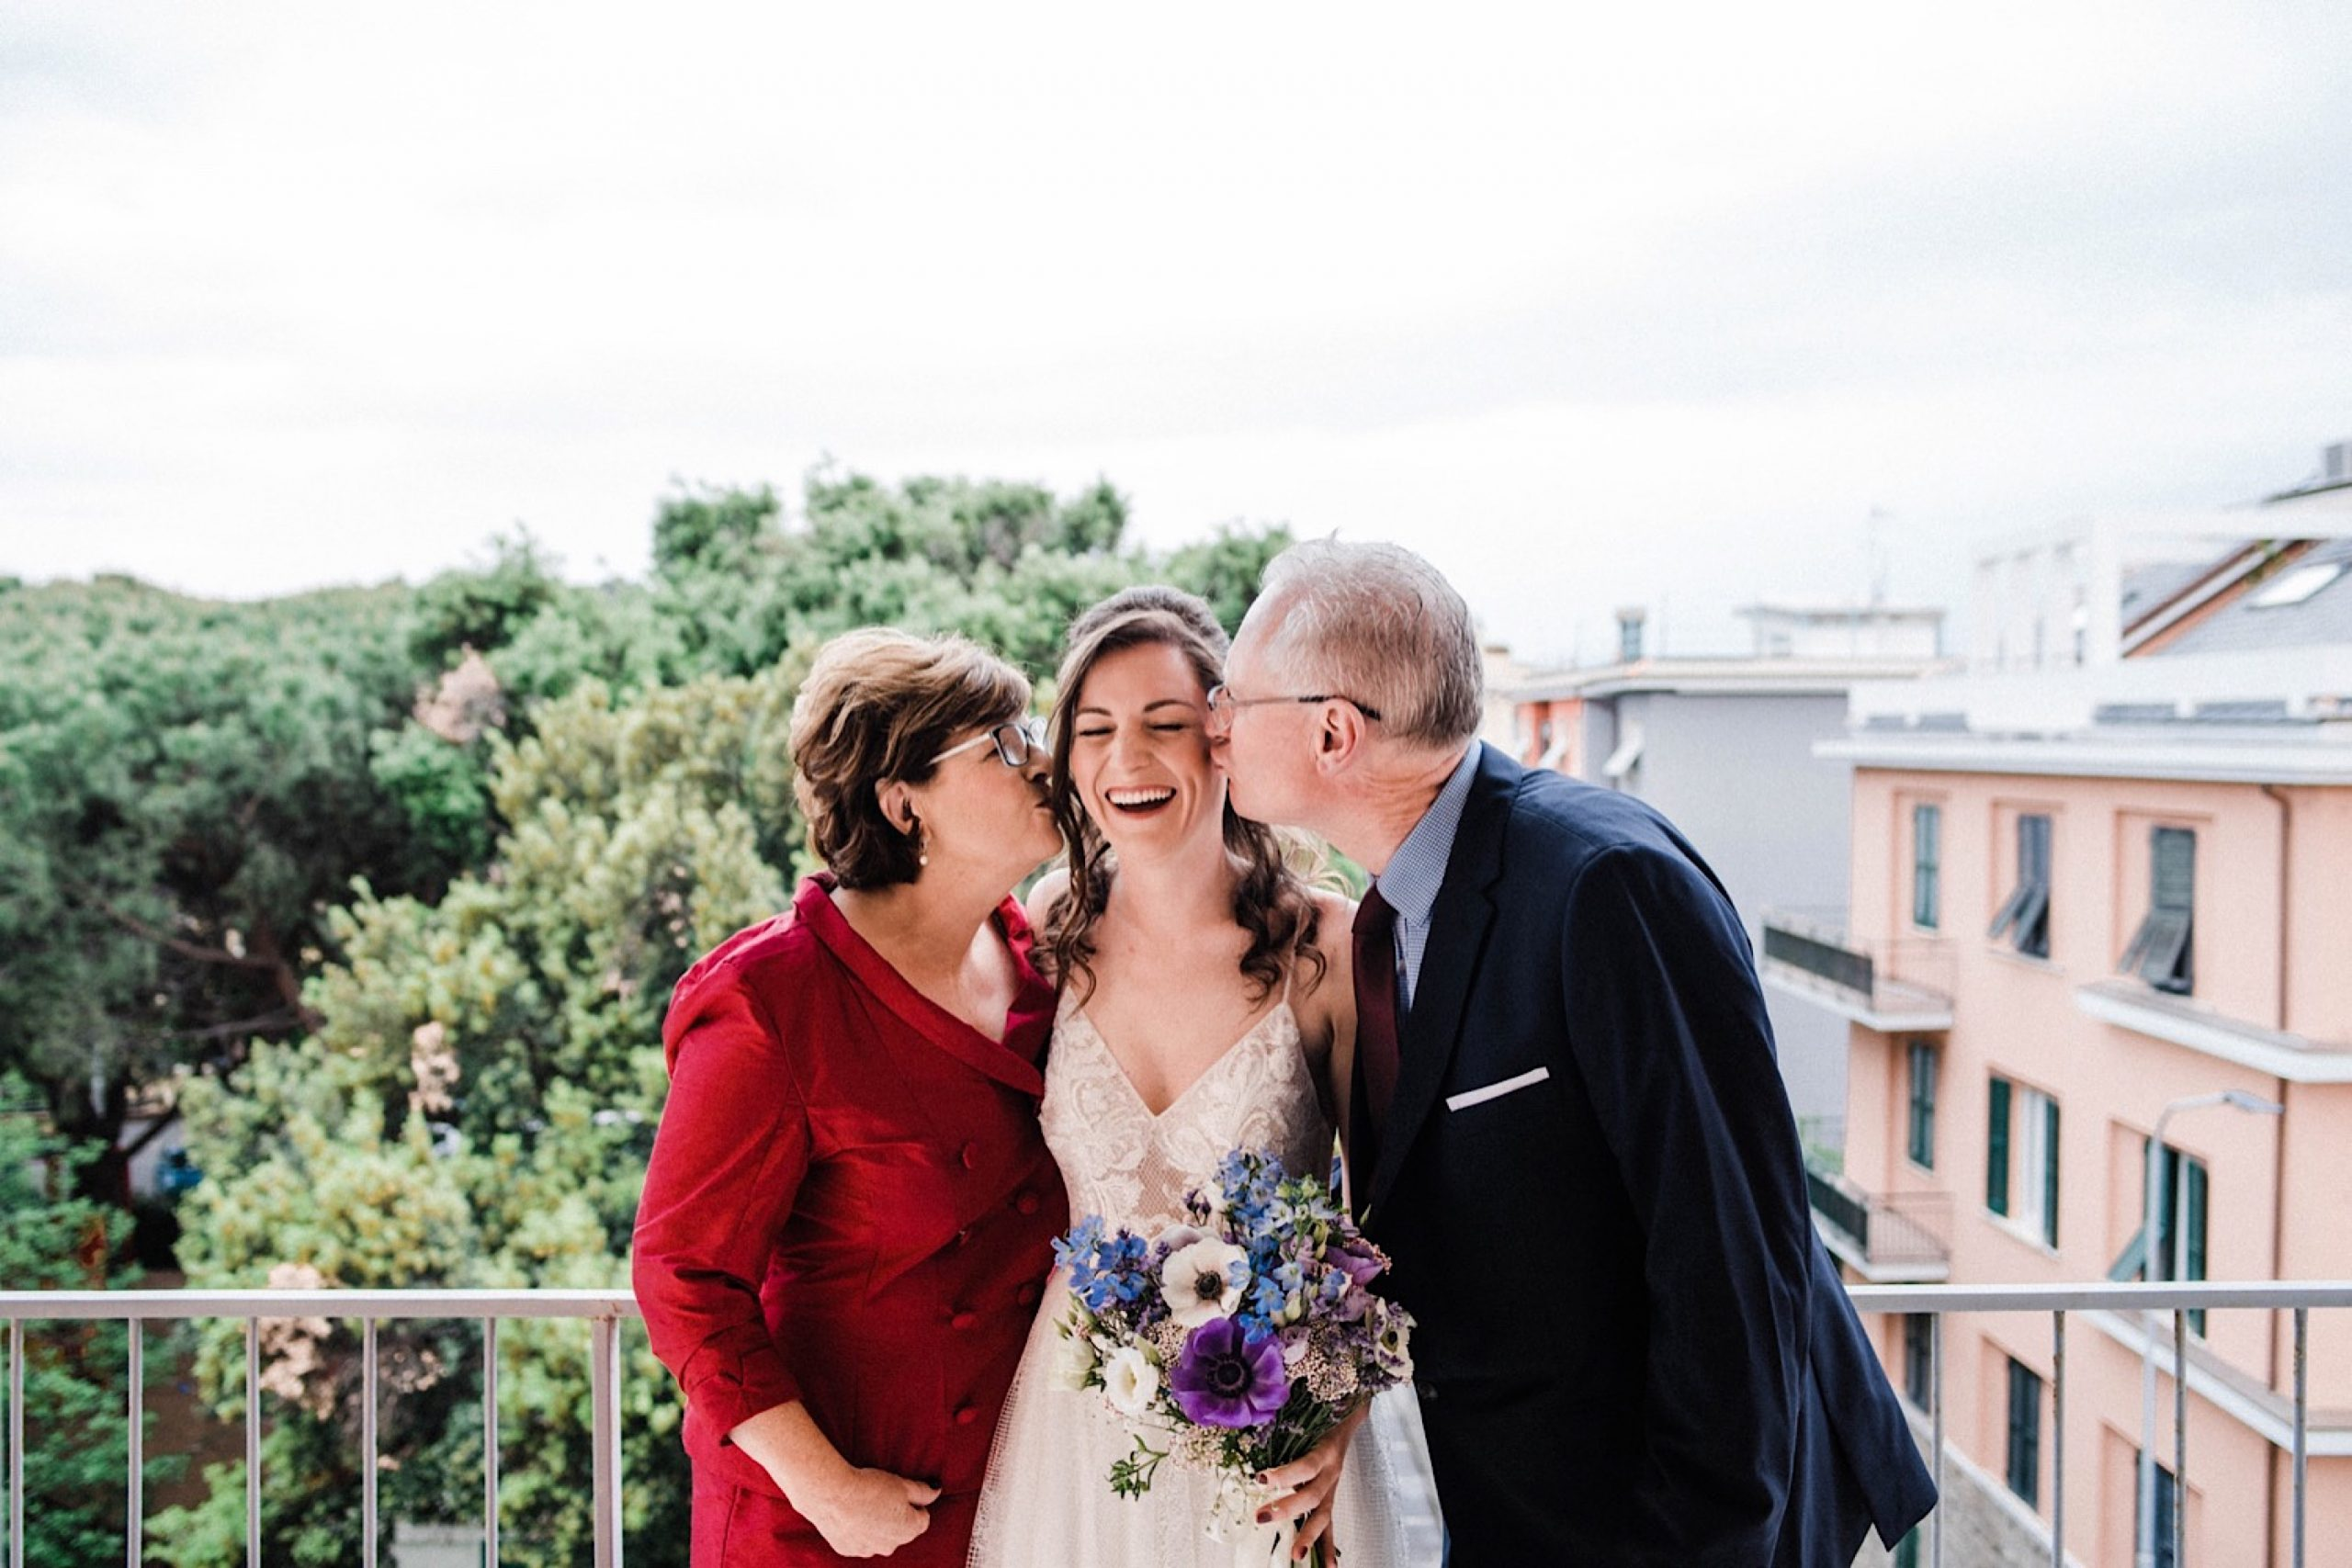 A wedding photo of the bride with her parents, who are kissing her on the cheek, on a balcony in Sestri Levante on the Italian Riviera.